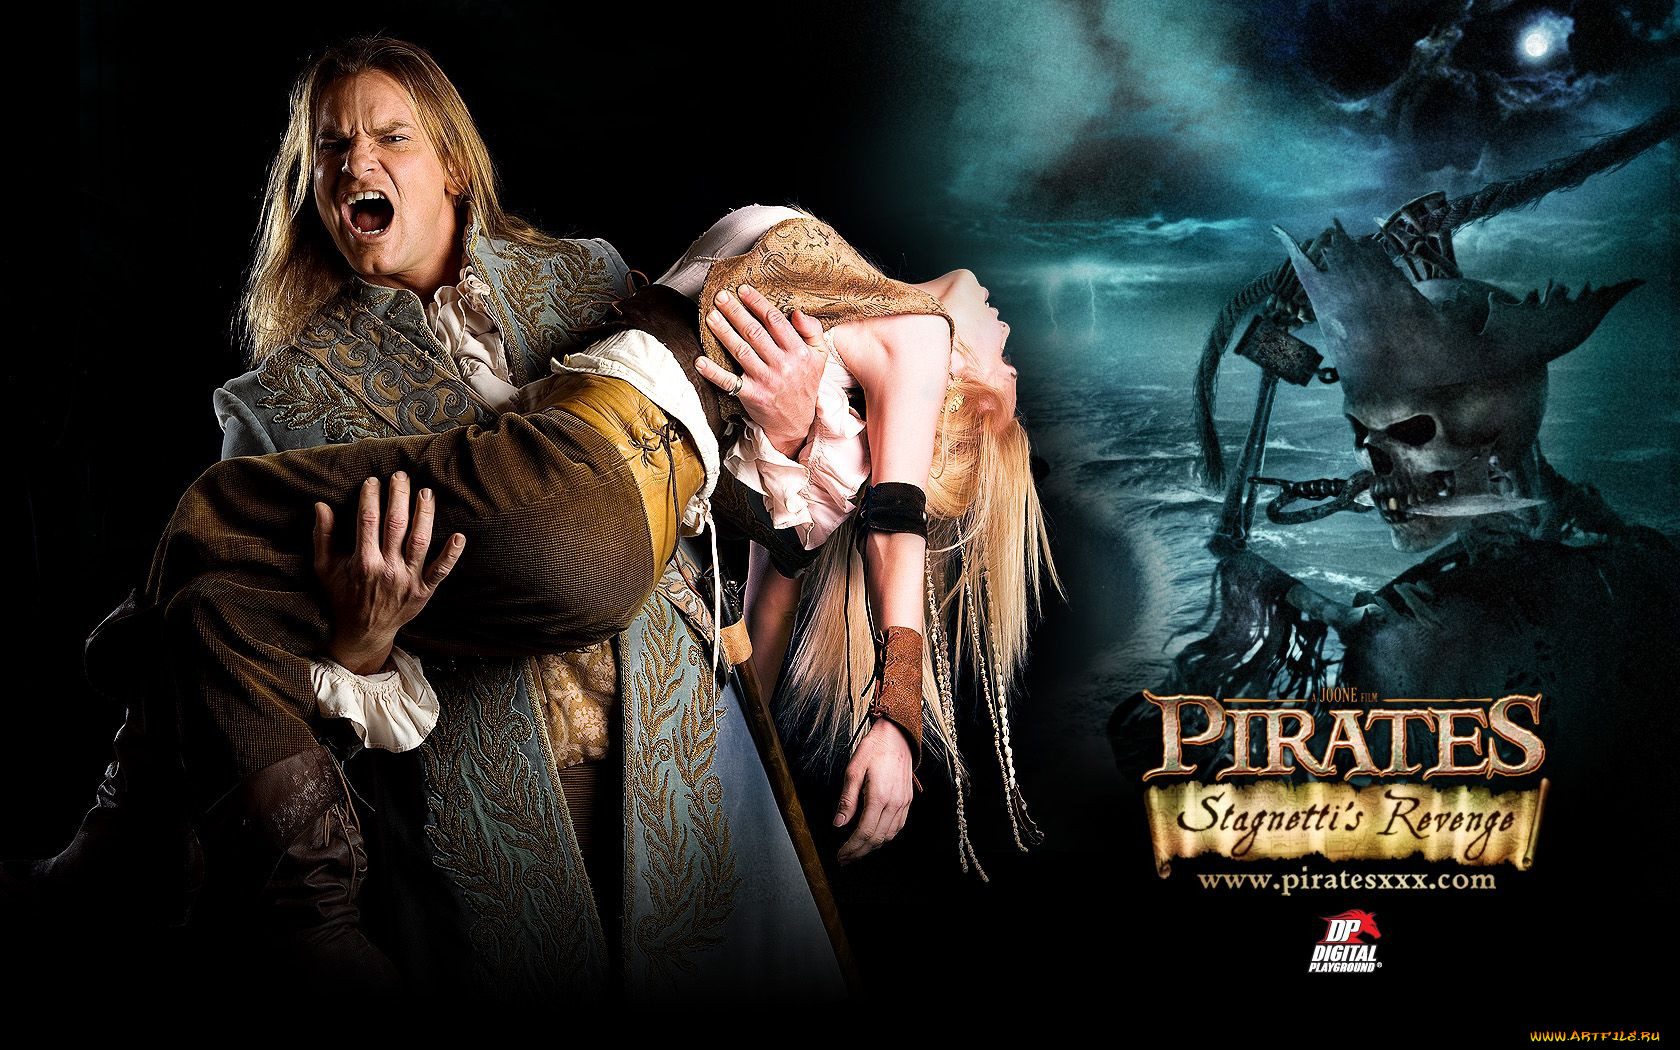 Link piratesxxx full movie 3gp download naked videos